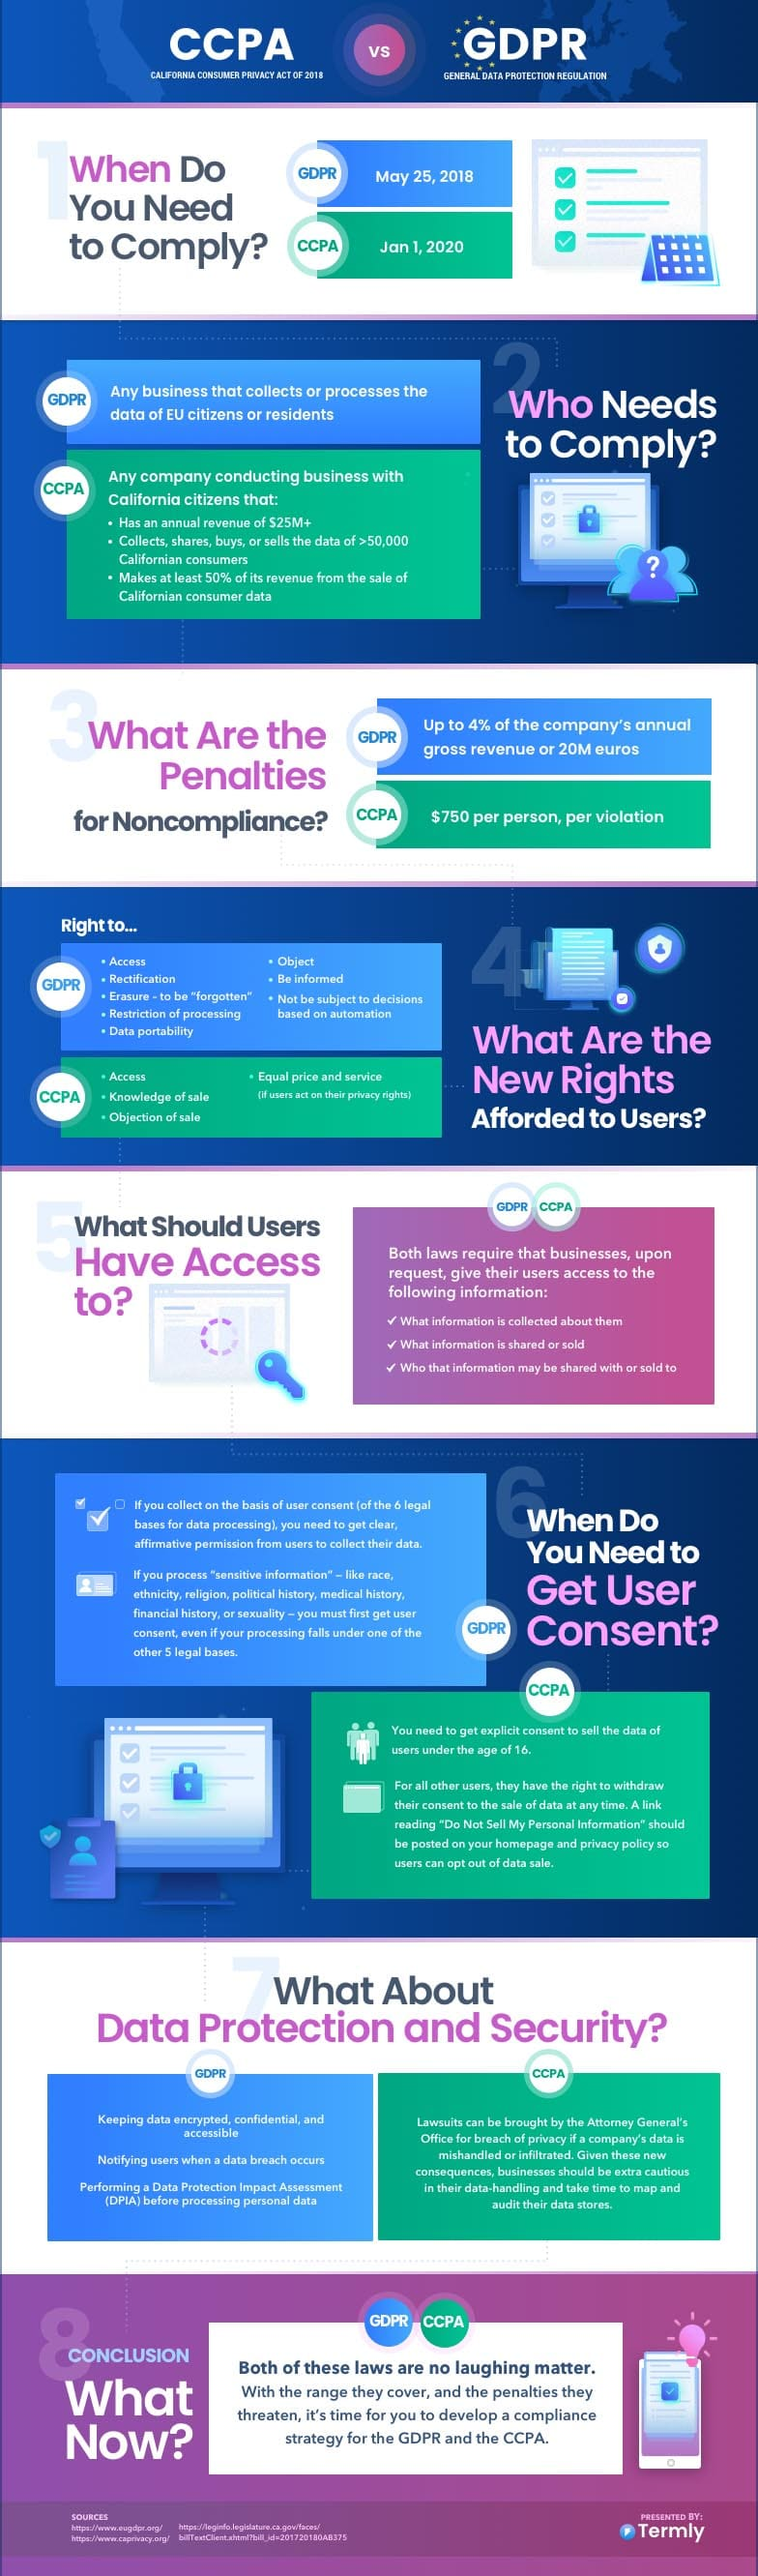 infographic-ccpa-vs-gdpr